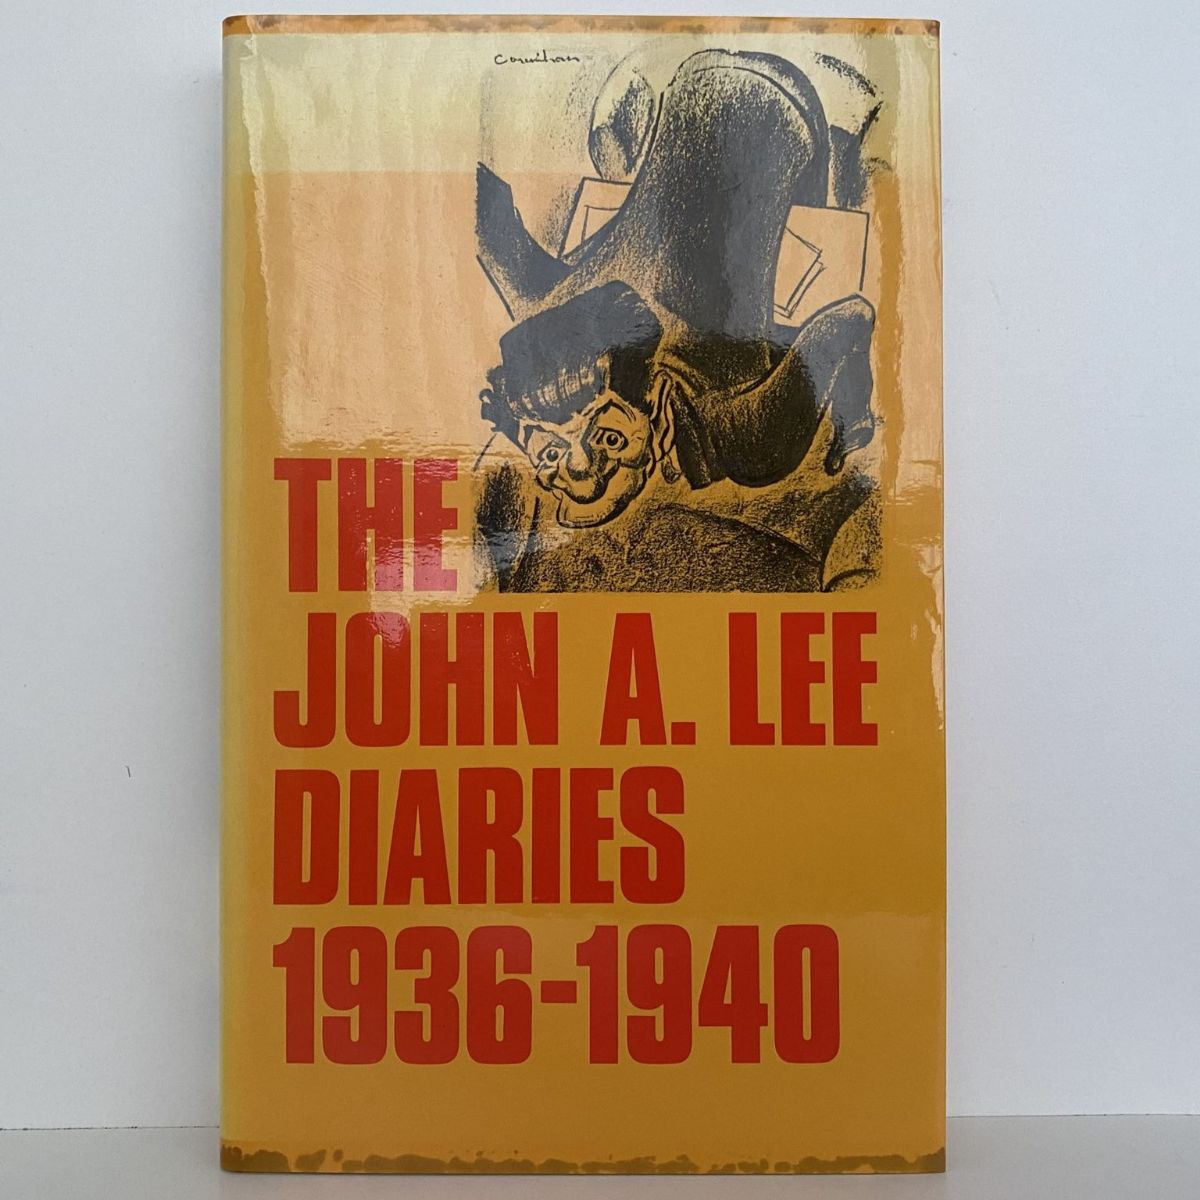 THE JOHN A LEE DIARIES 1936-1940